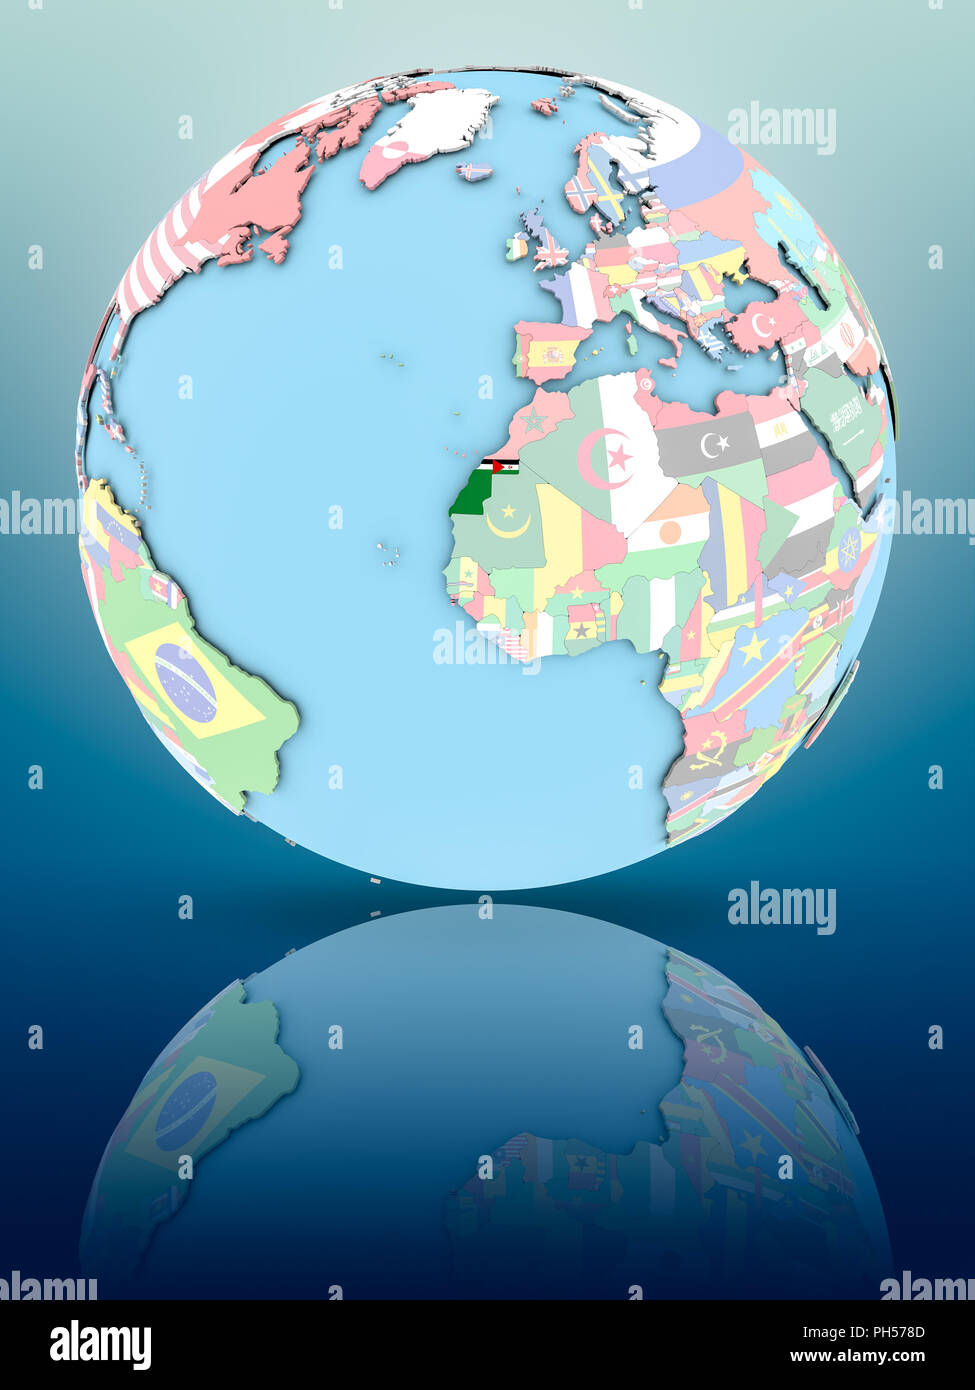 Western Sahara on political globe with national flags on reflective surface. 3D illustration. - Stock Image